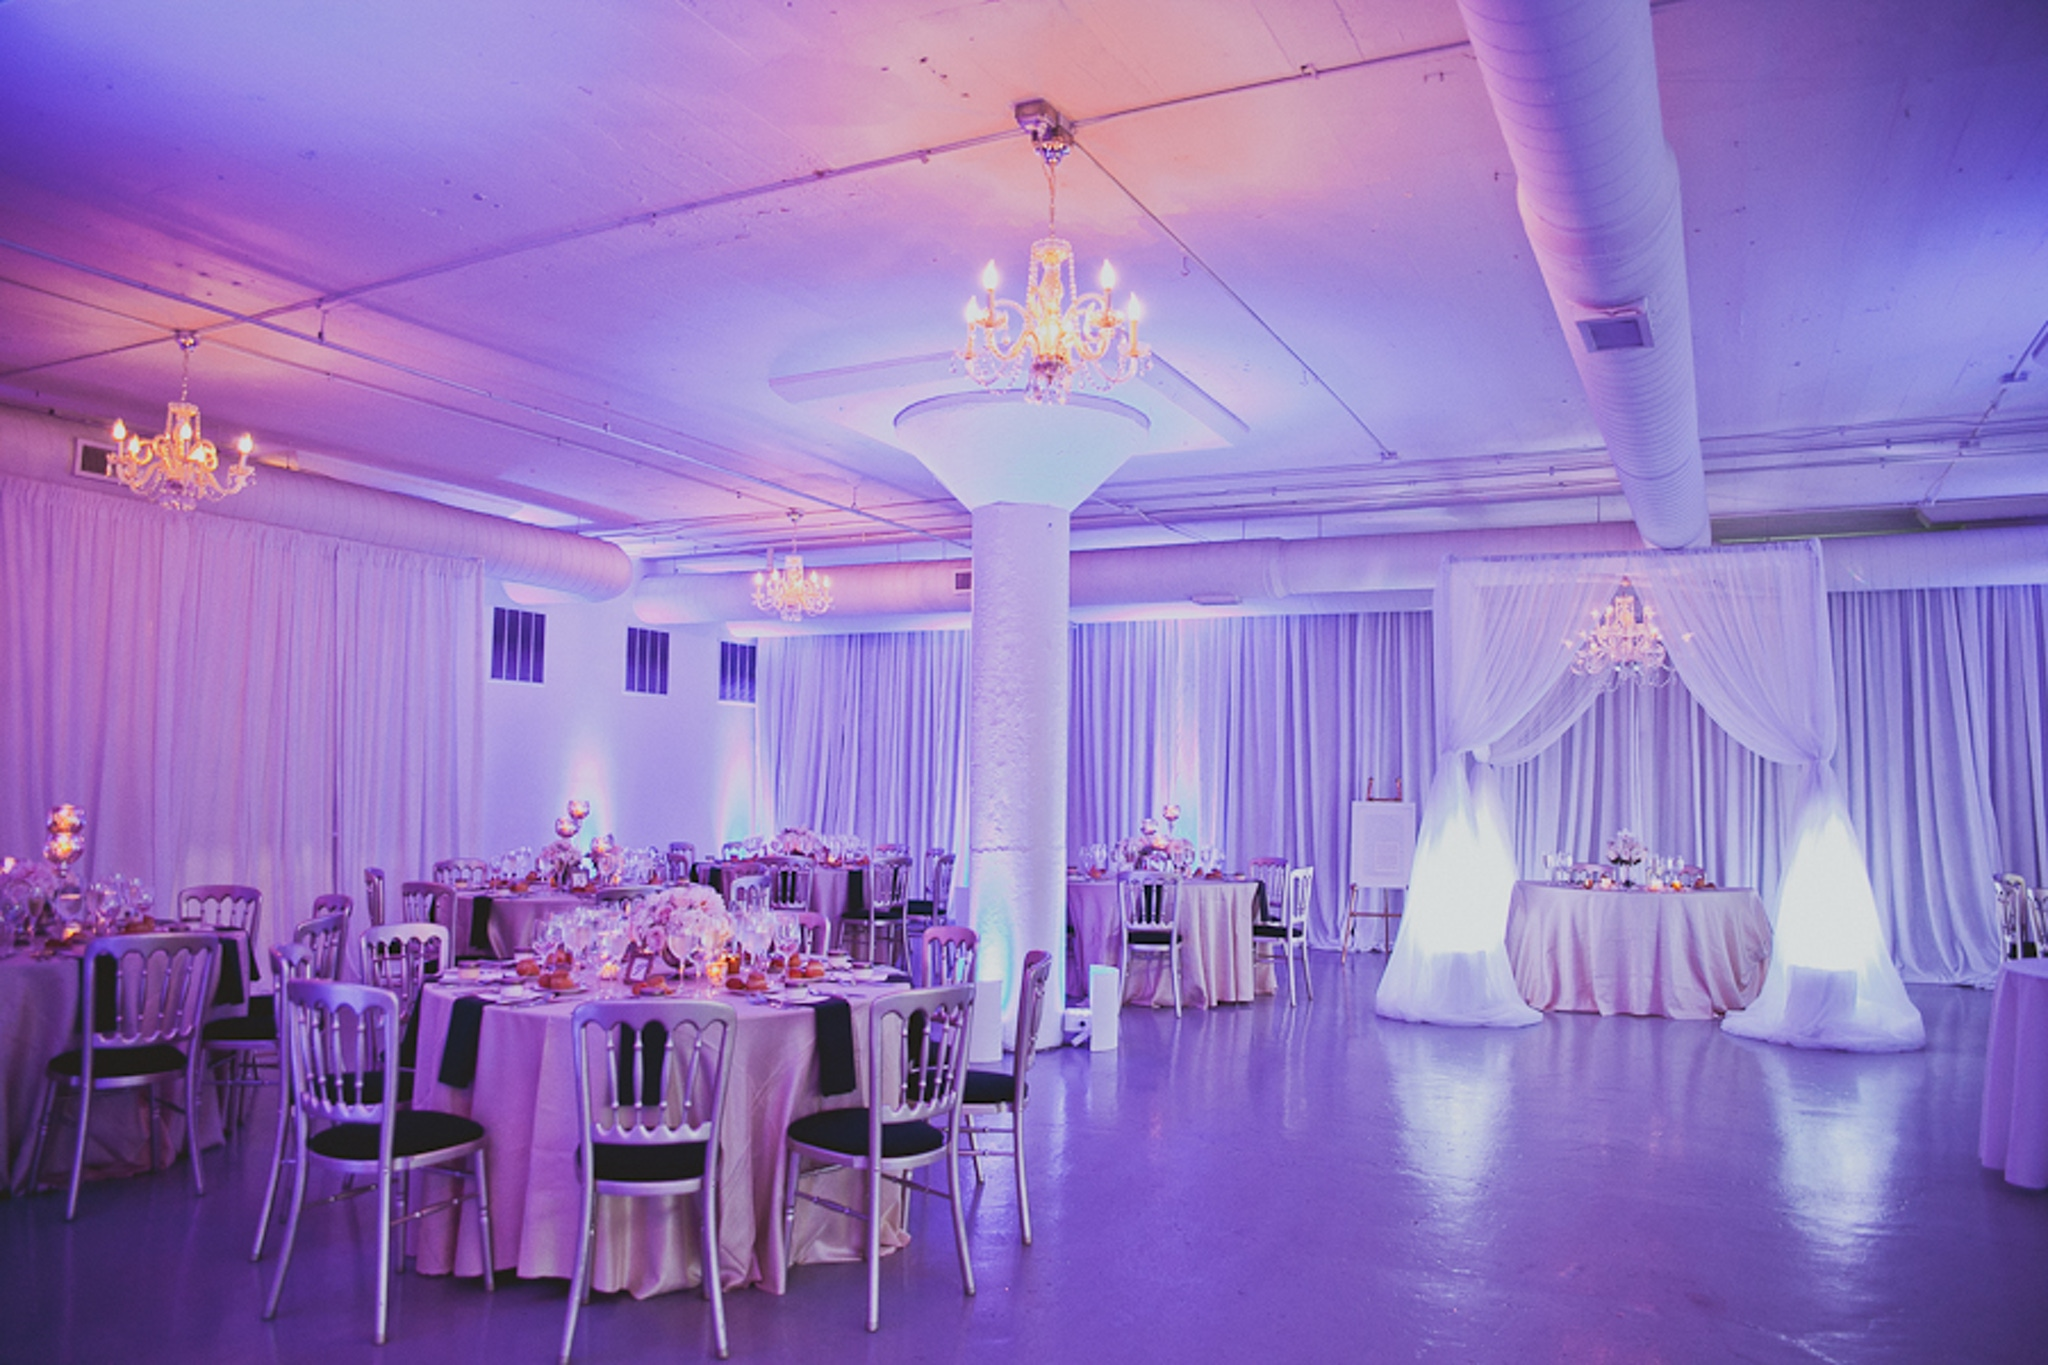 Chicago West Loop Wedding Venue - Room 1520